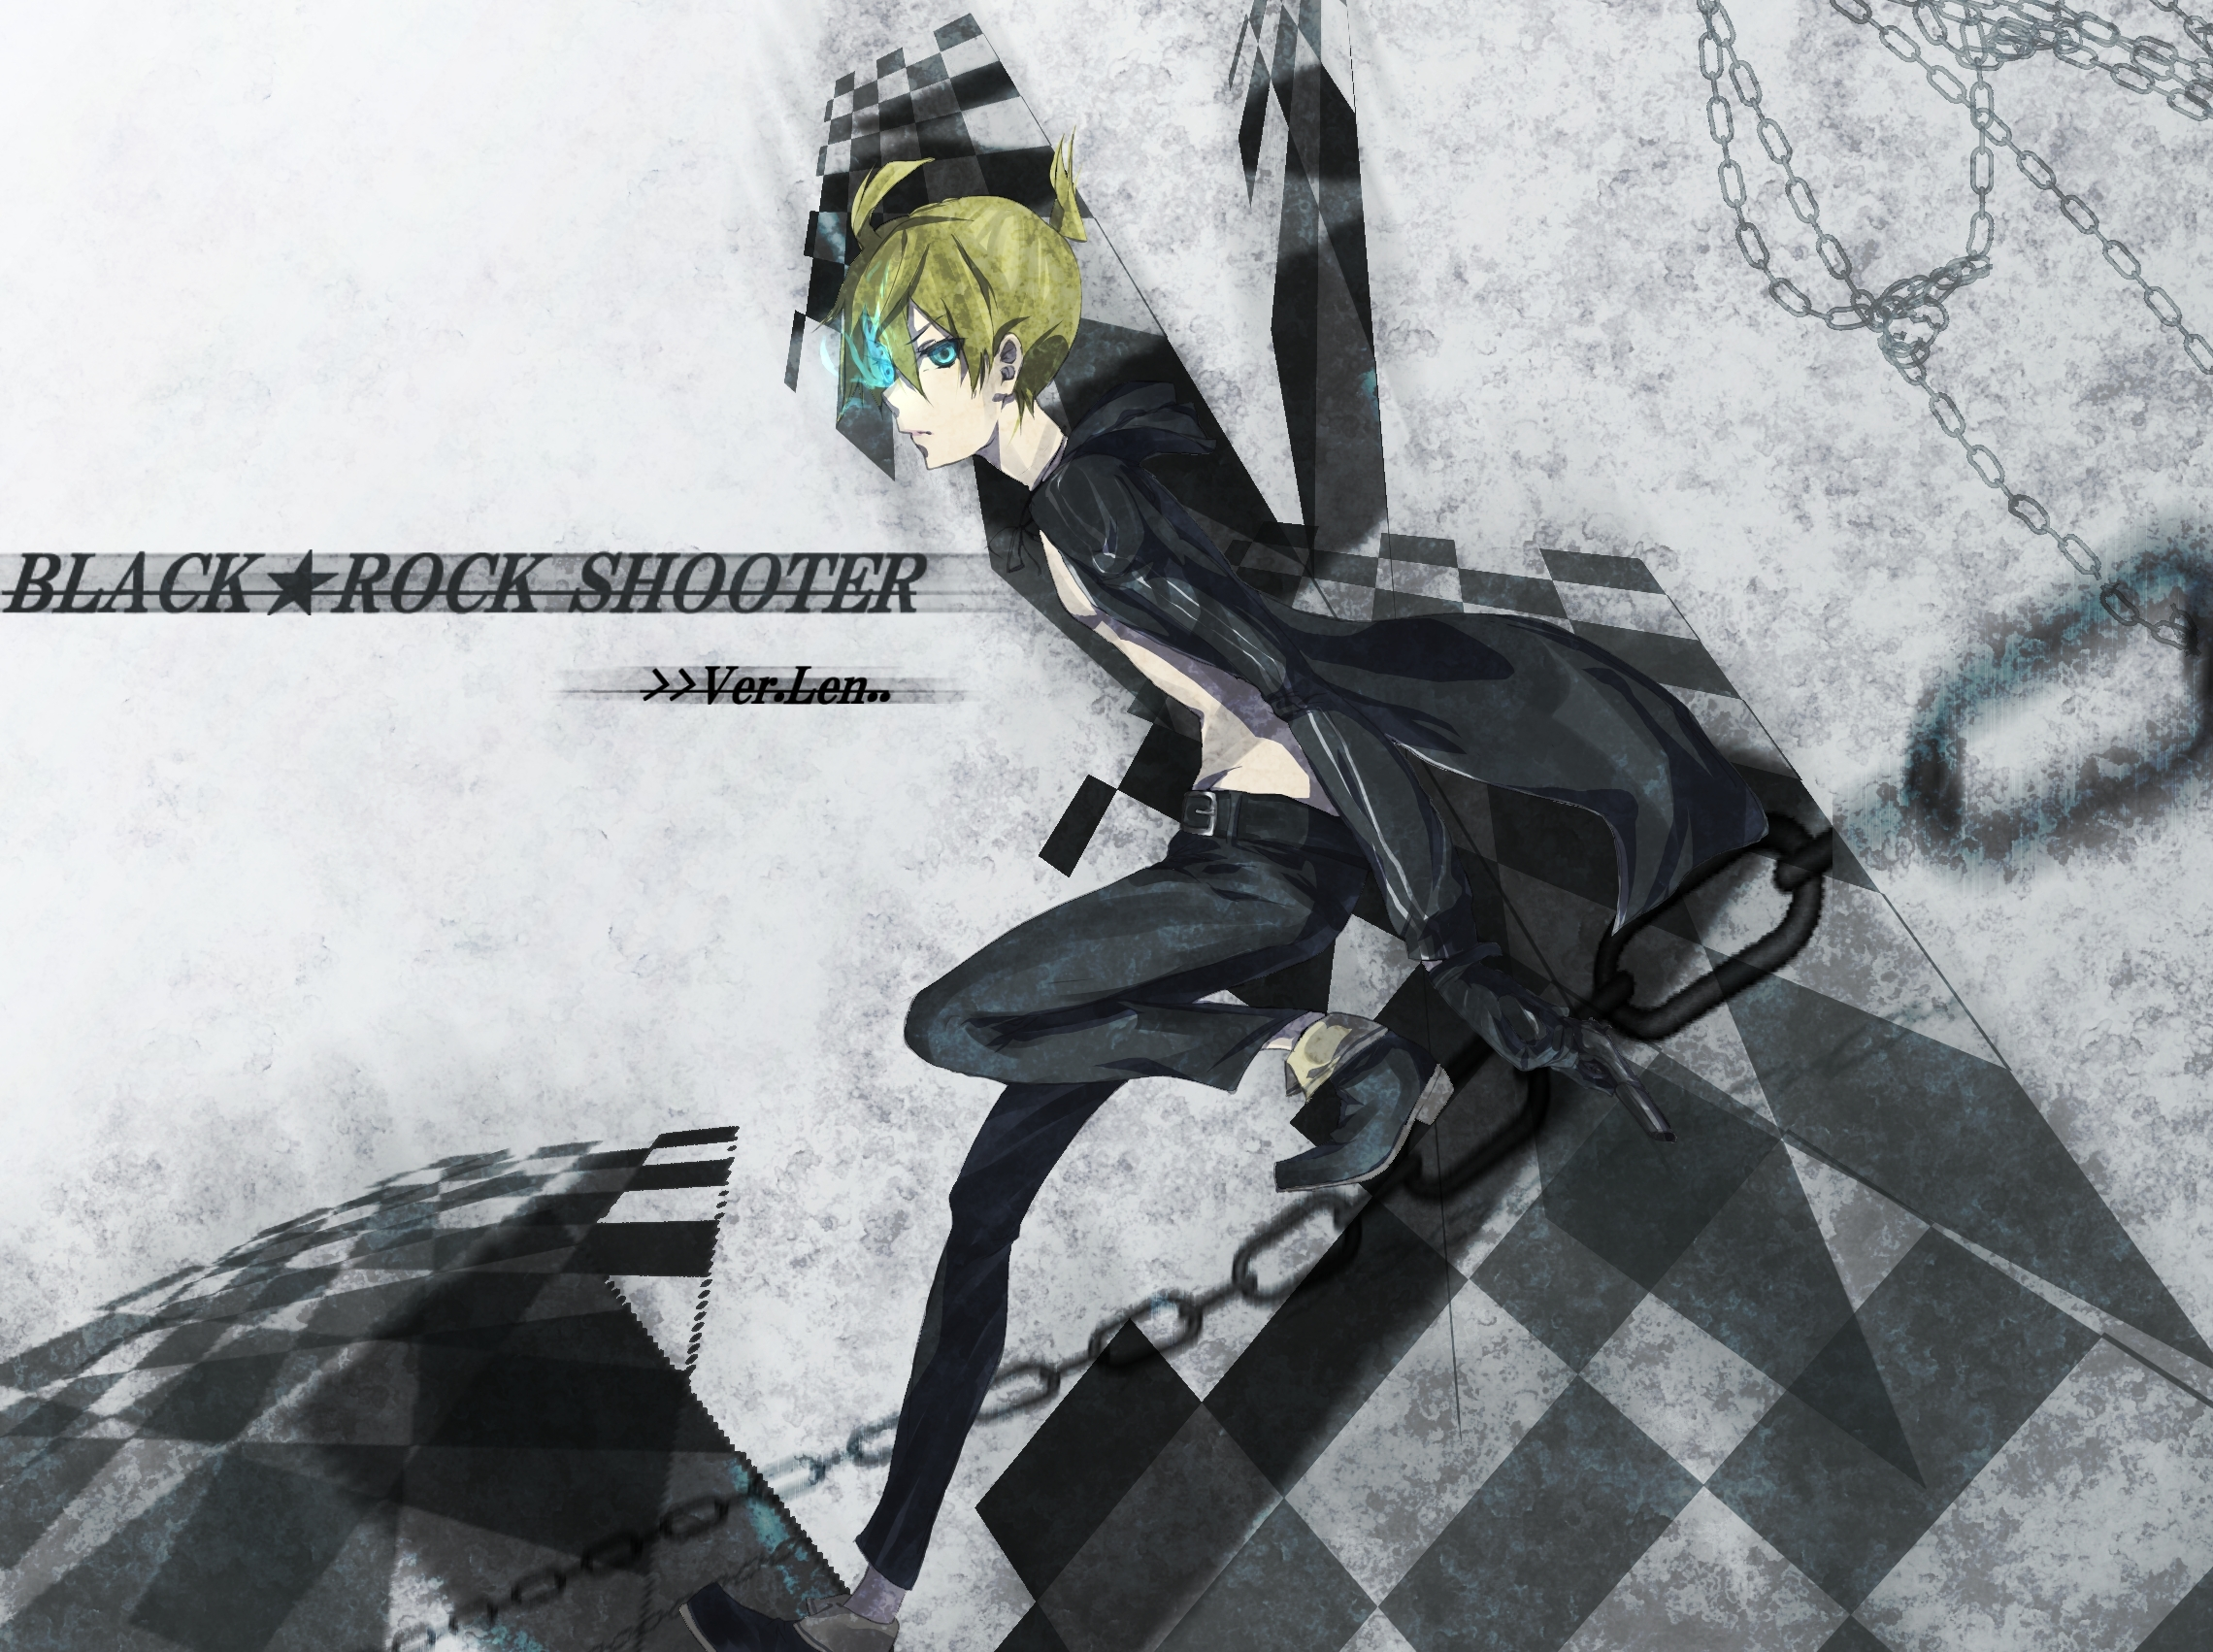 Neko Jacket Anime Wallpaper Girl Black Rock Shooter Wallpapers Pack 16 04 12